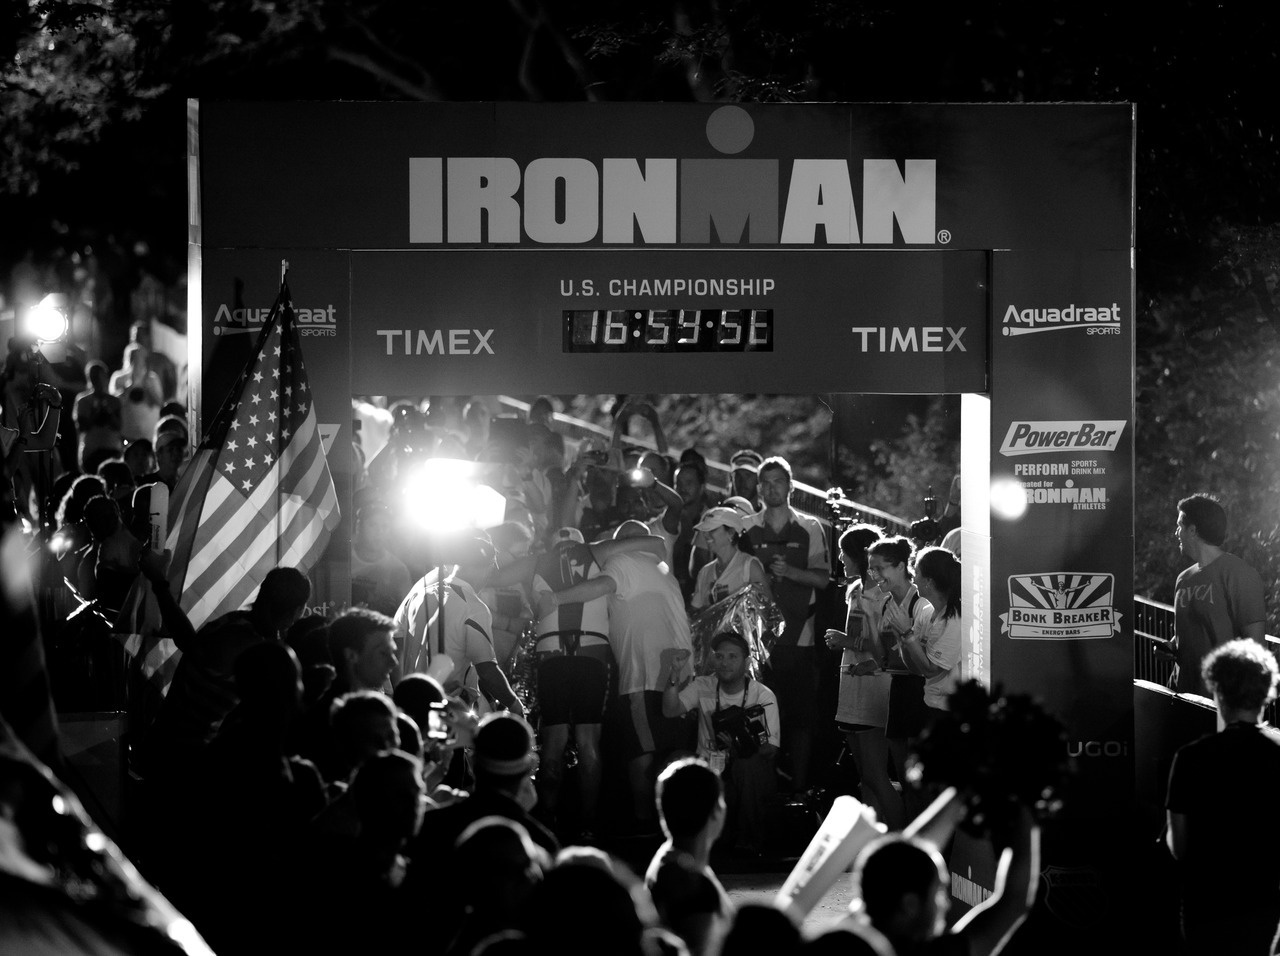 Made of Iron A male age-group triathlete crosses the finish line in Riverside Park right before the 17-hour cutoff during the Ironman U.S. Championship.  Observe More on Flickr